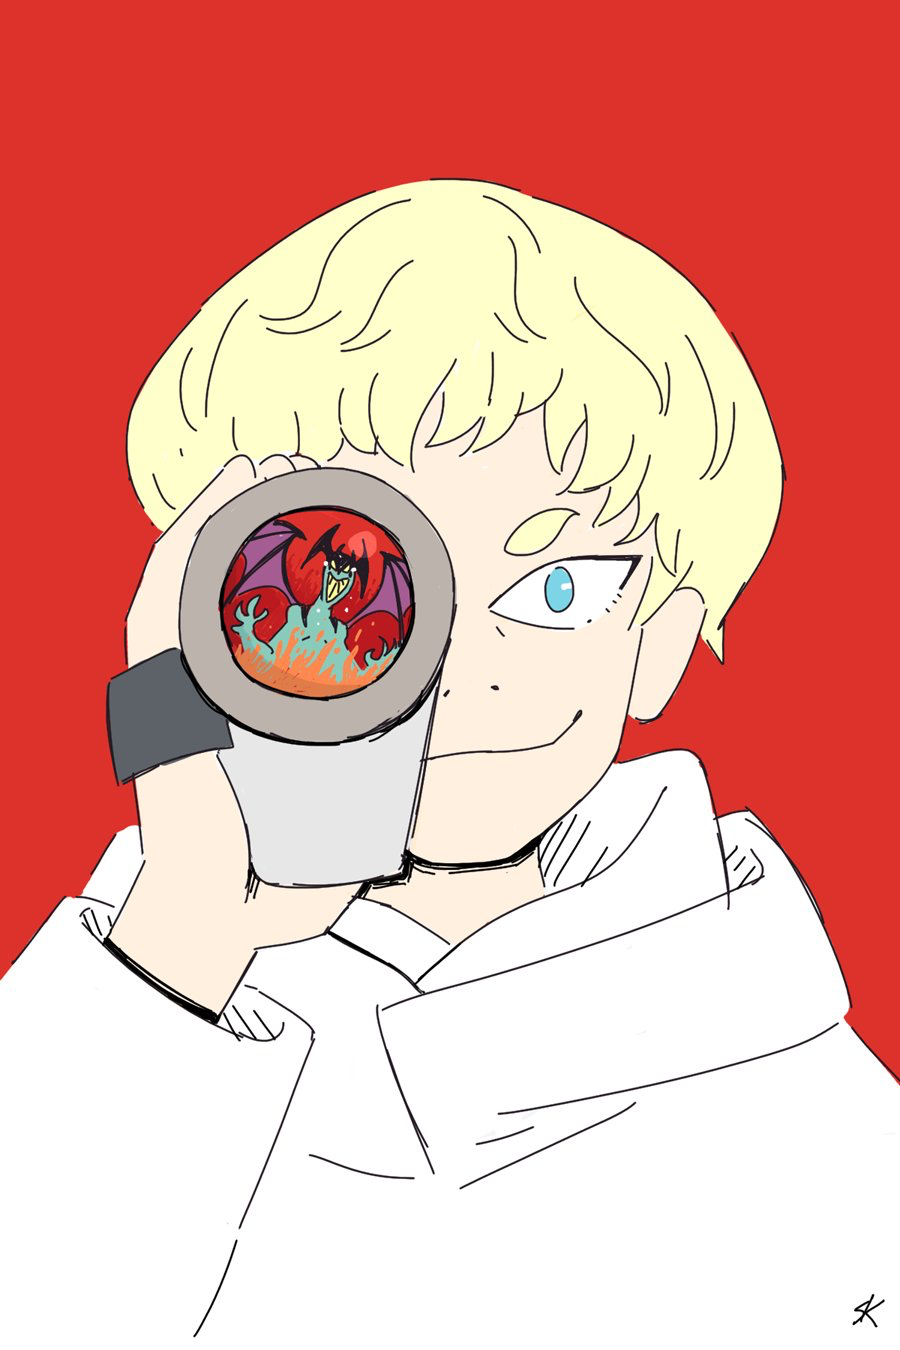 Pin By Bumblingbumblebee On Devilman Devilman Devilman Crybaby Cry Baby Anime